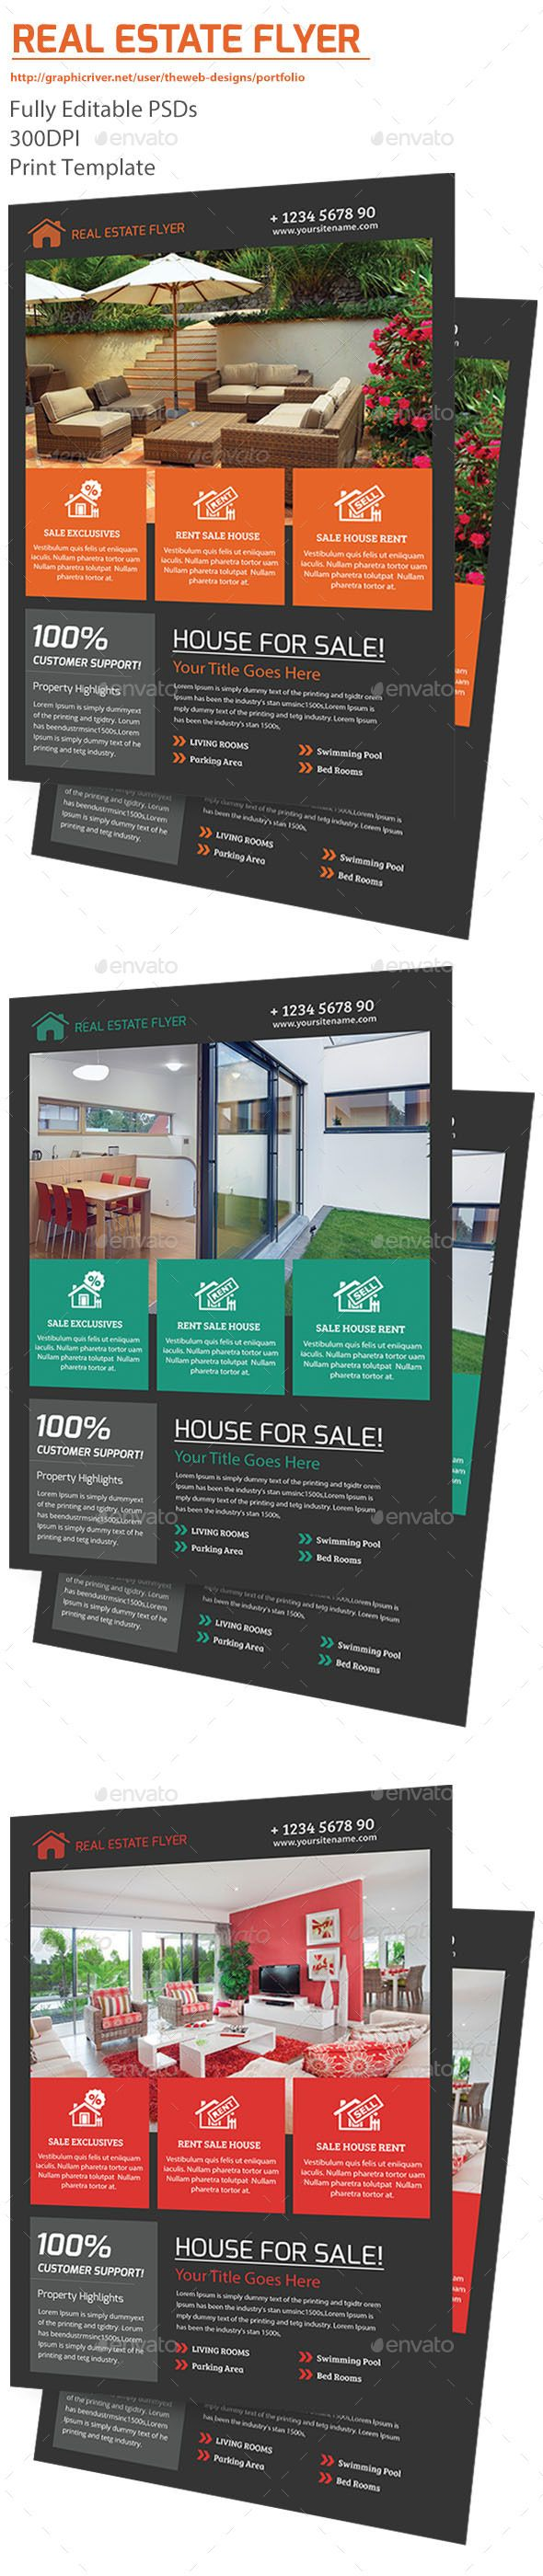 Real Estate Flyer Template #design Download: http://graphicriver.net/item/real-estate-flyer/12732936?ref=ksioks